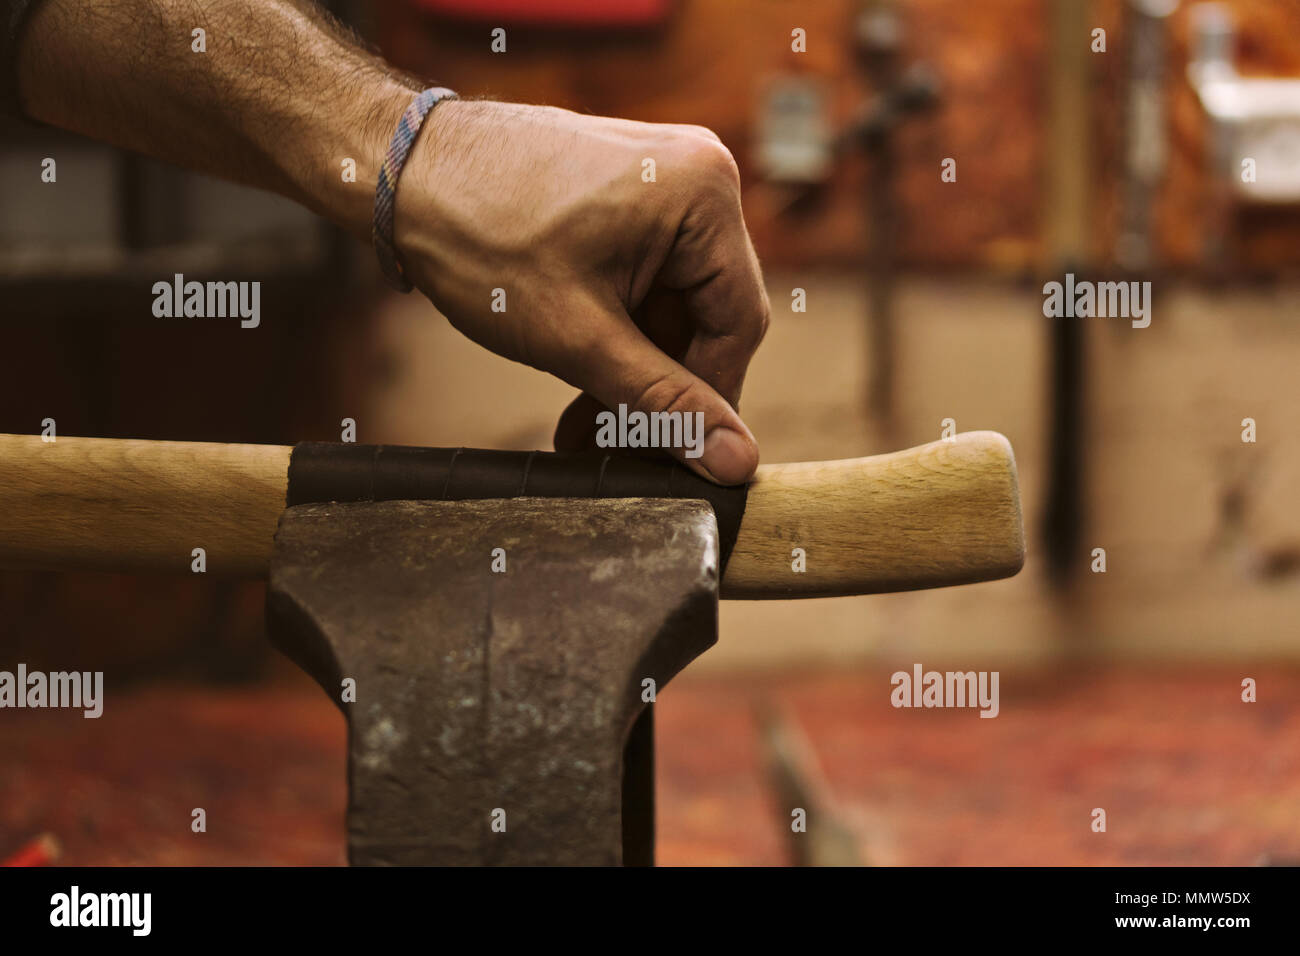 Man working in carpentry workshop. He checks leather winding on wooden handle of ax. Men at work. Hand work. - Stock Image